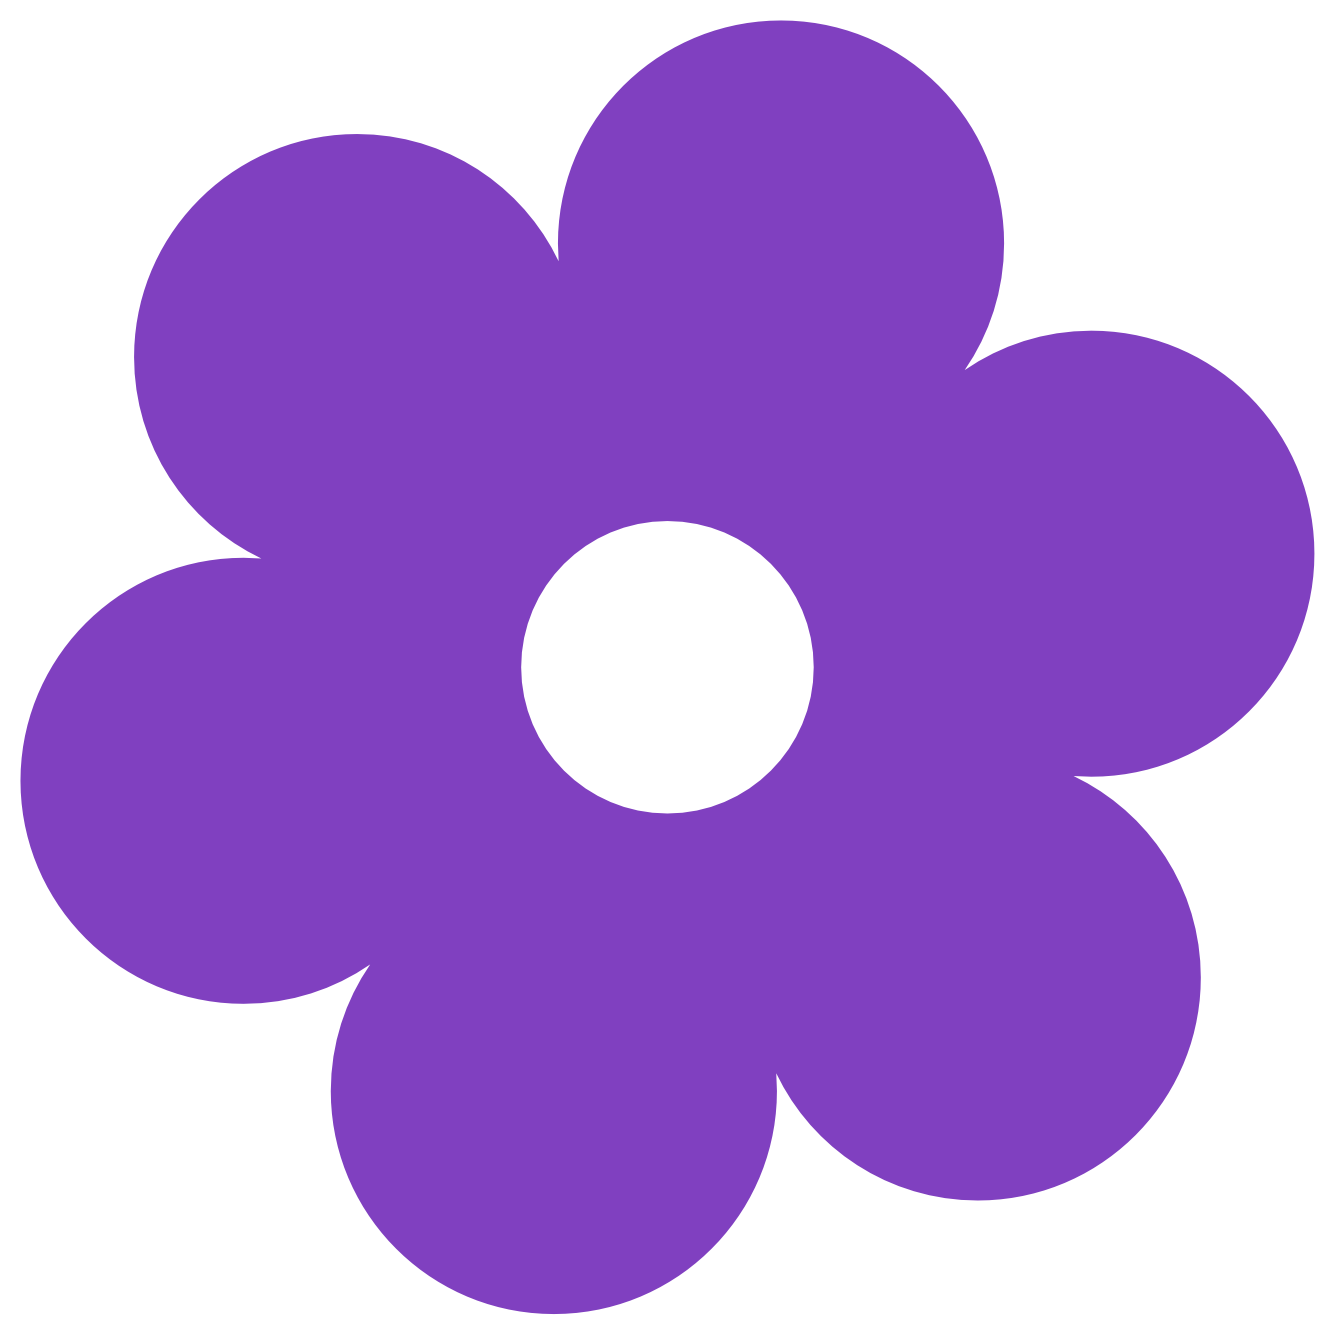 Flower in clipart. Free images of flowers